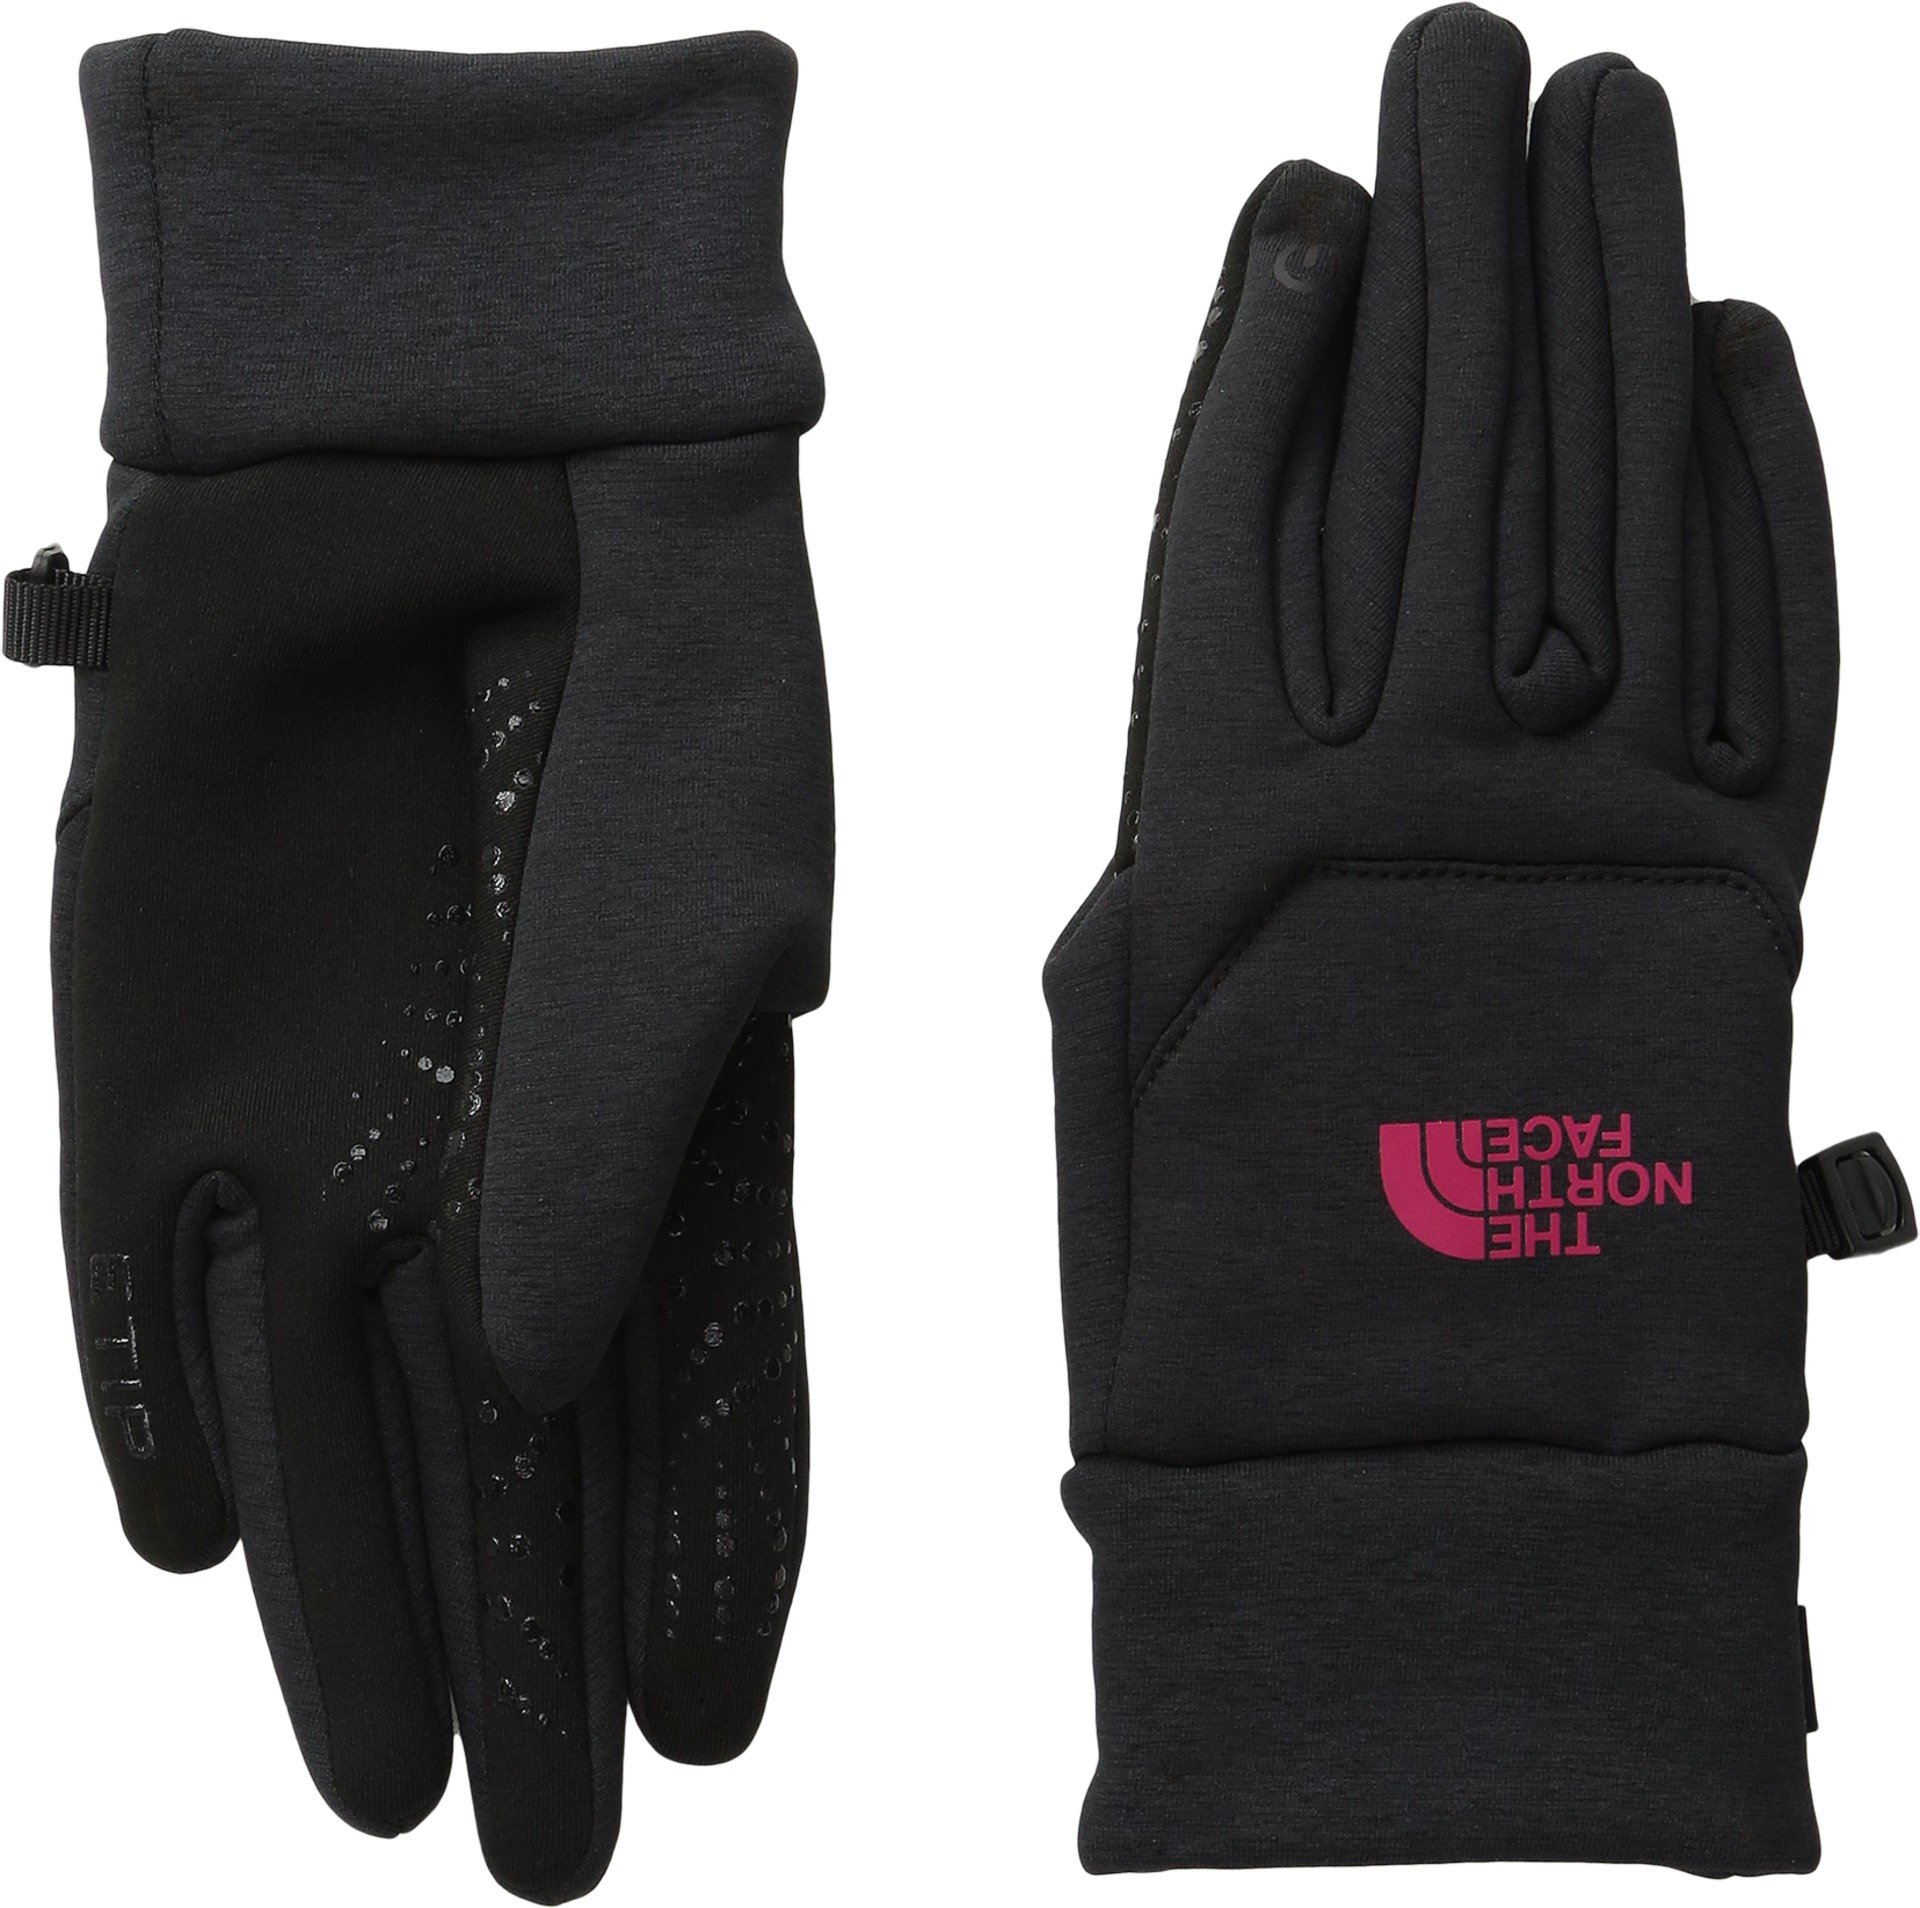 The North Face Women's Etip Hardface Gloves Tnf Black/Cherise Pink MD